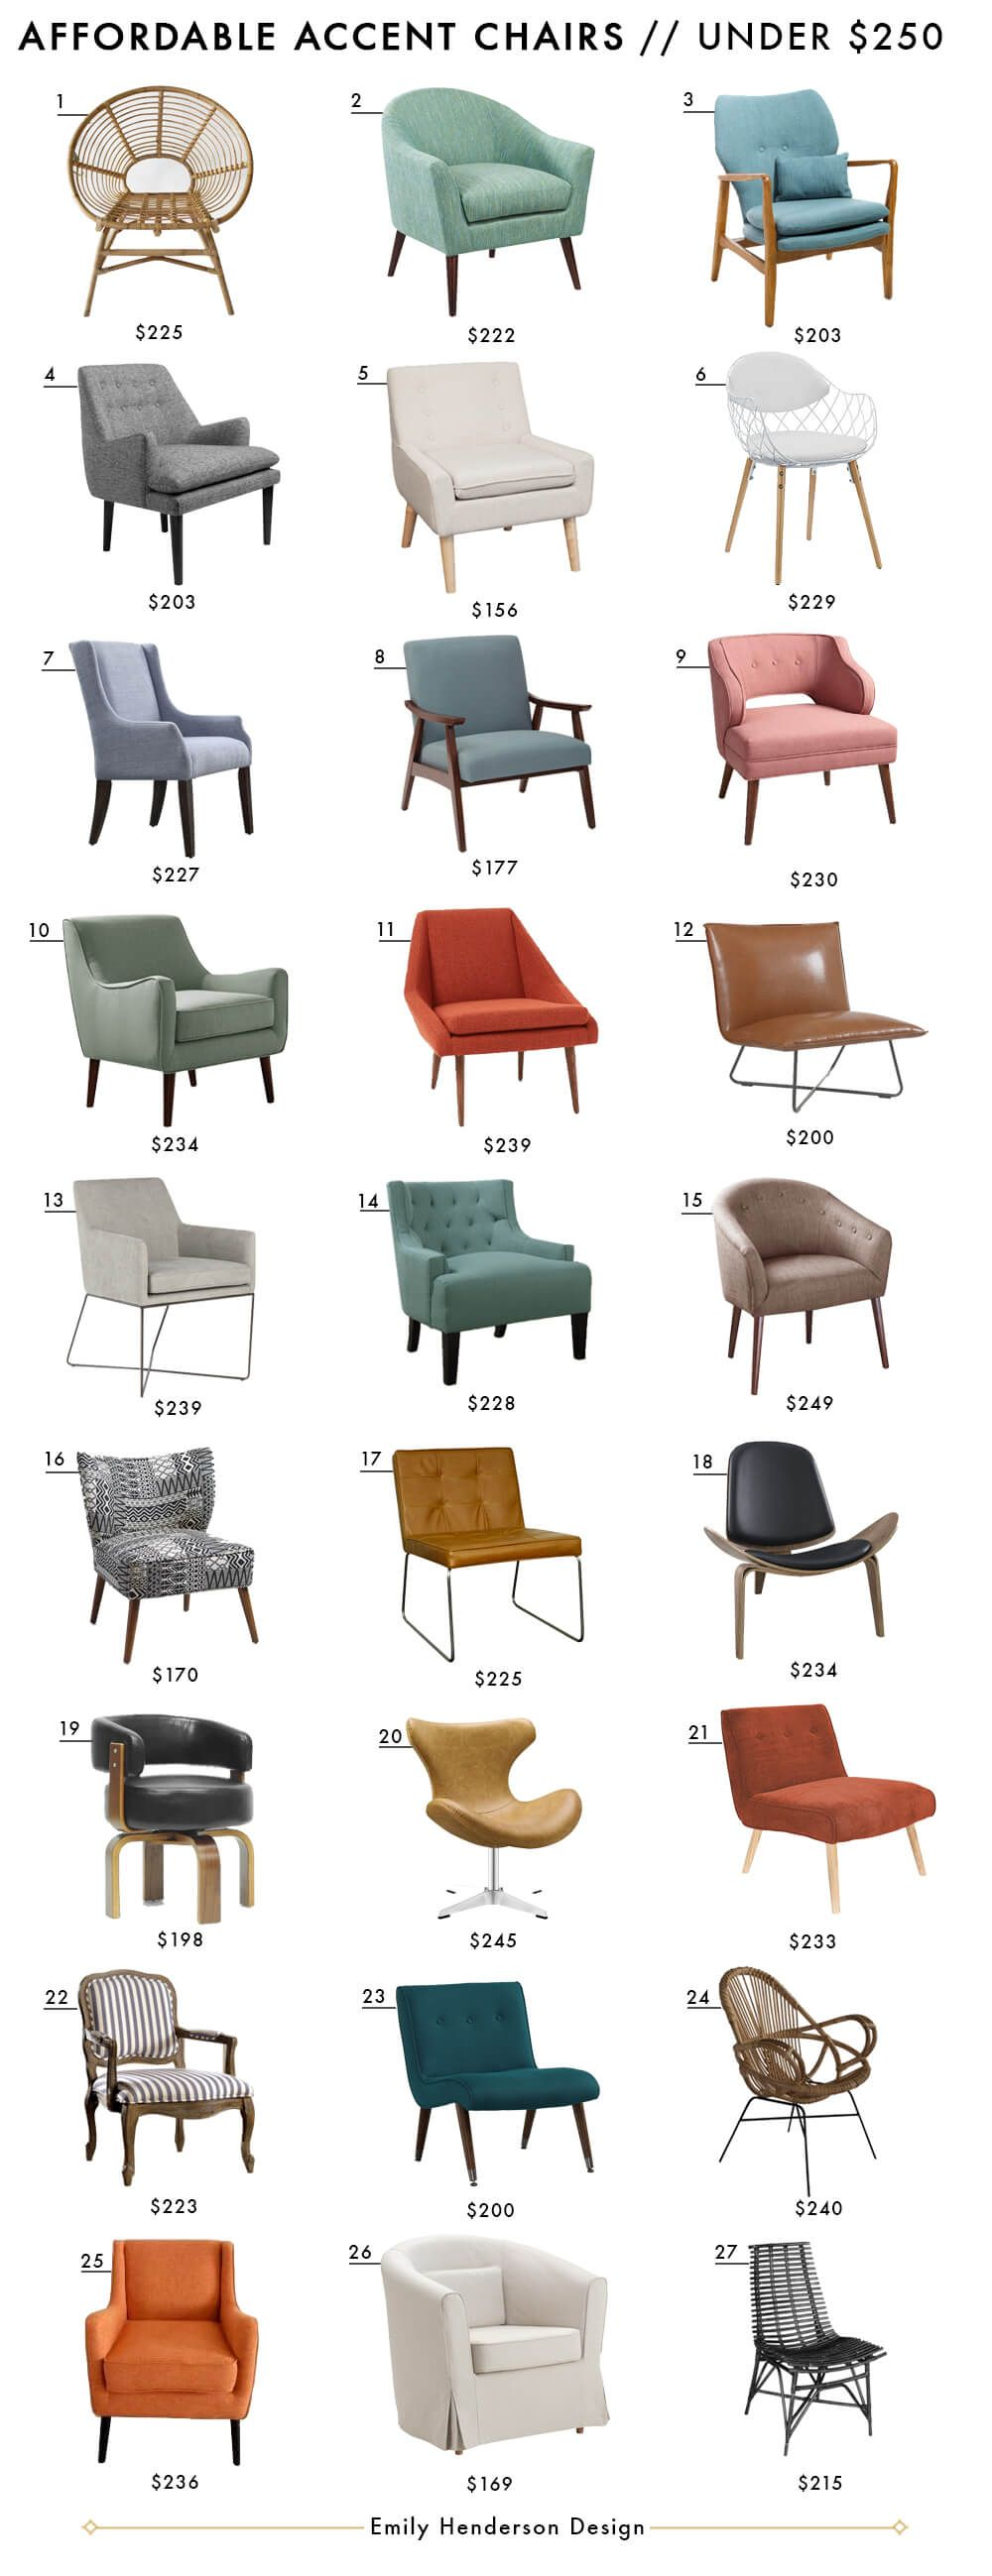 Affordable Accent Chair Roundup | Pinterest | Living room chairs ...